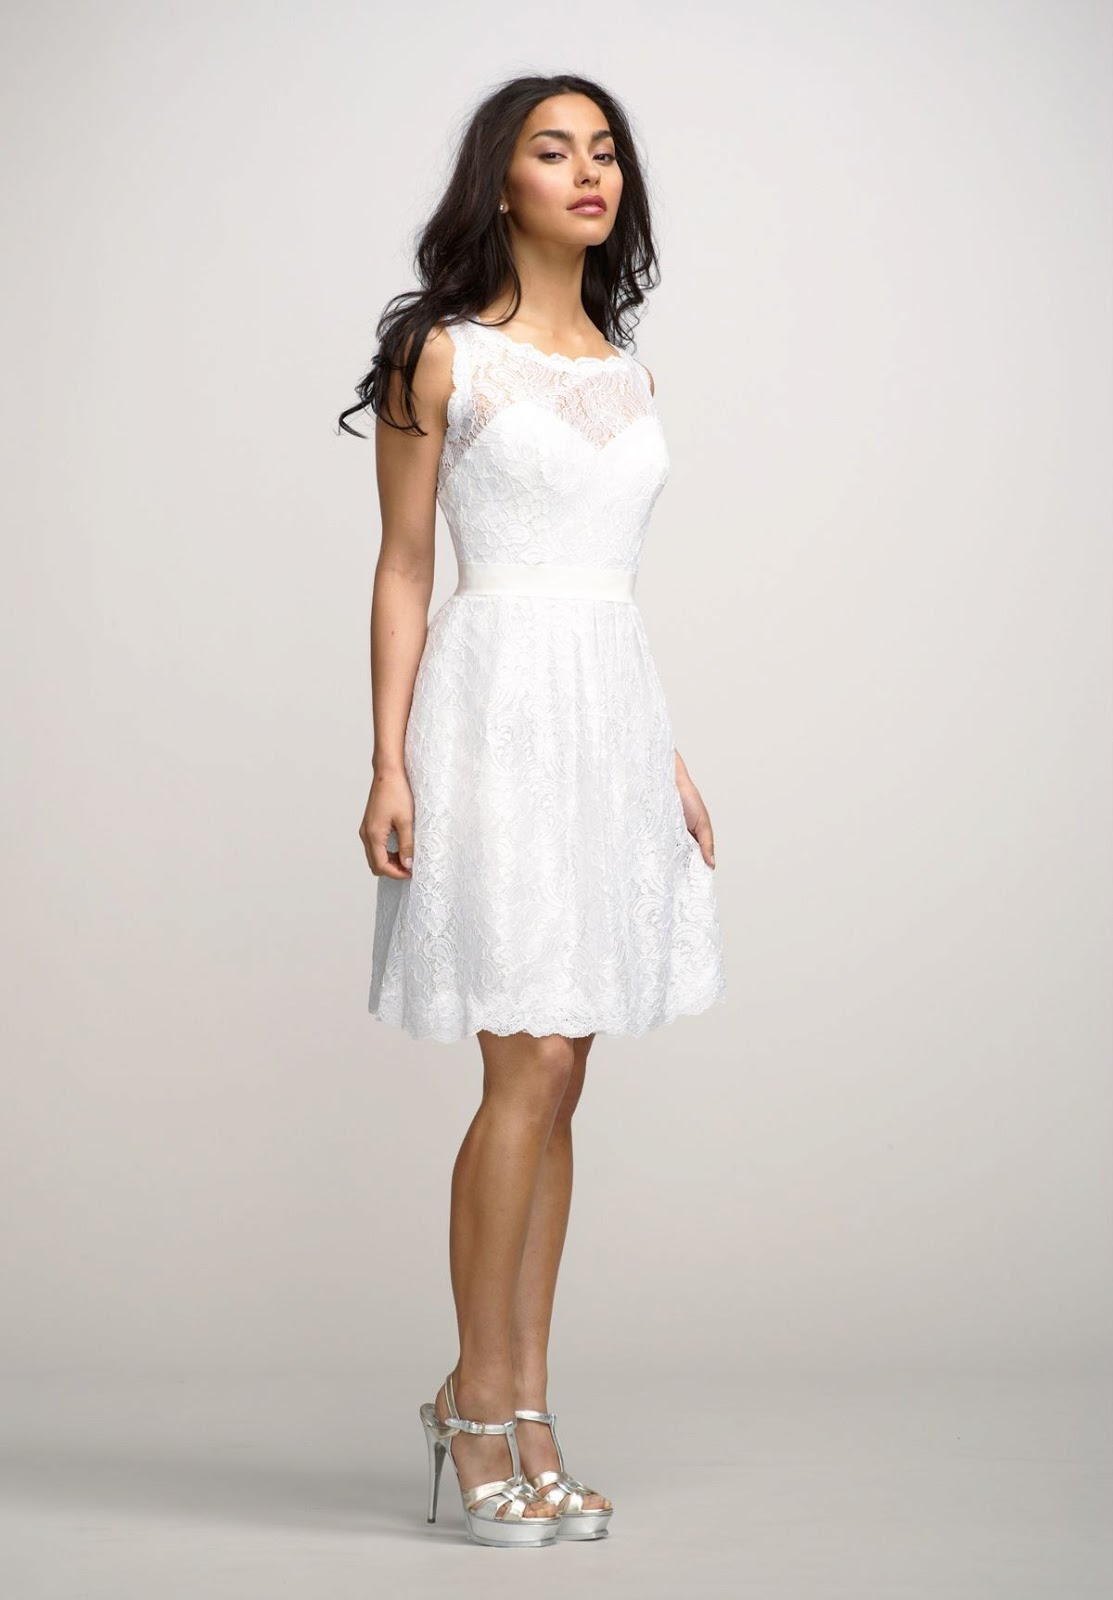 Wedding reception dresses Dresses for wedding reception